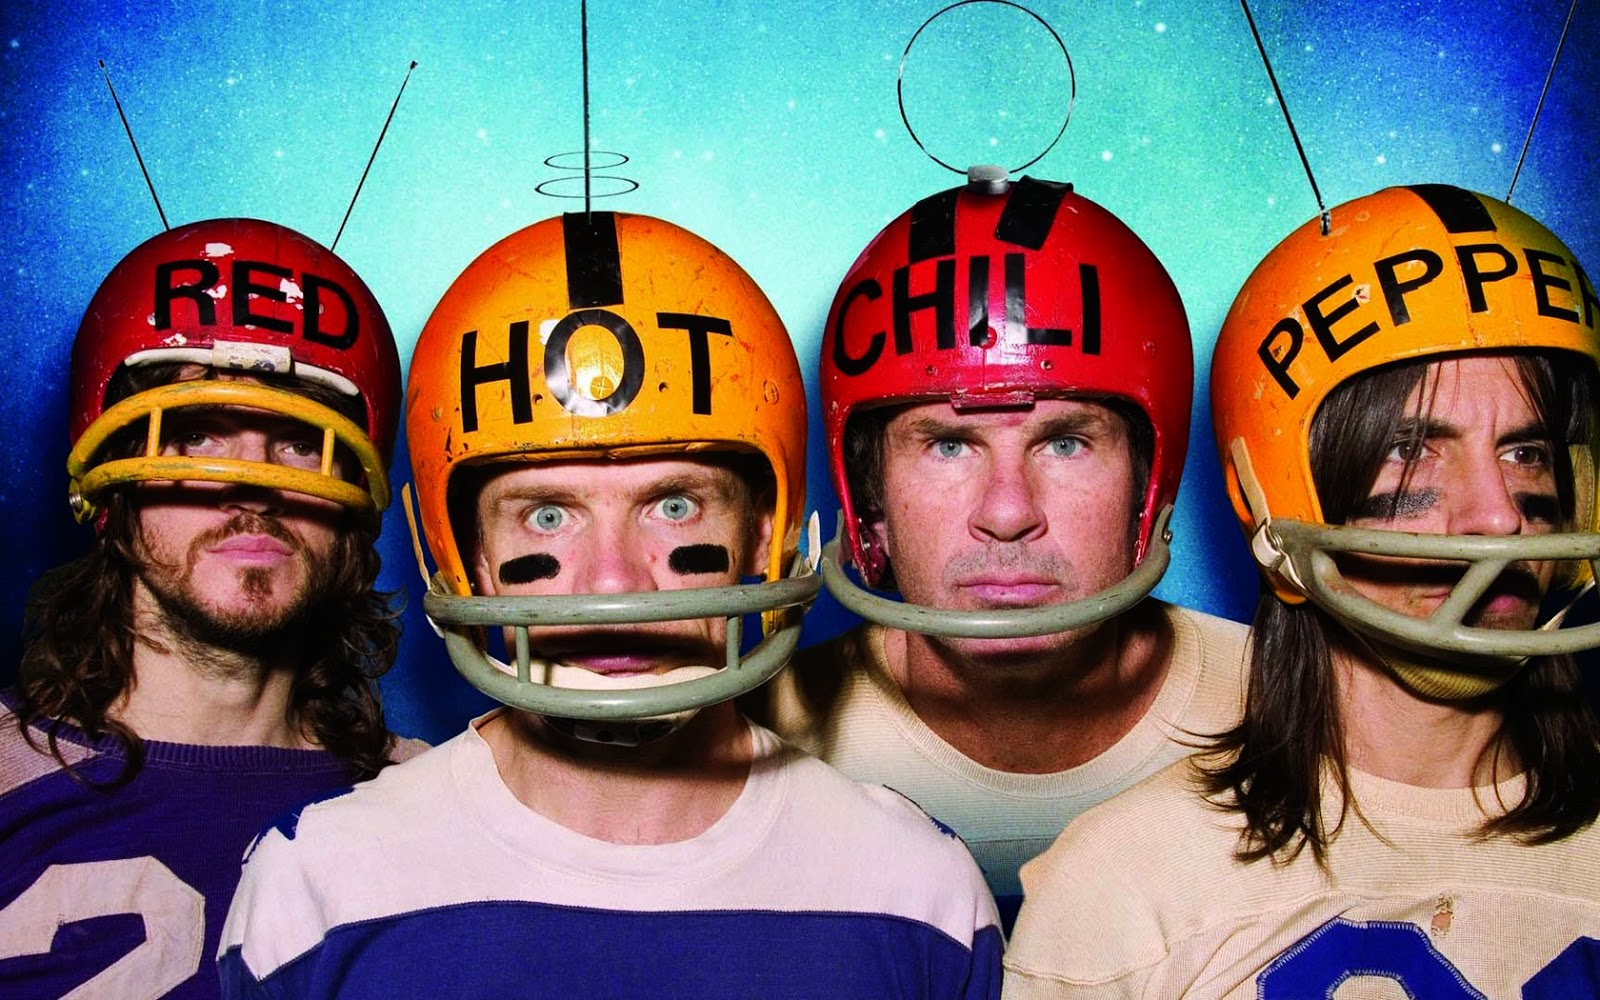 Red hot chili peppers have gone under some controversy due to fans complaining at the super bowl that fleas bass